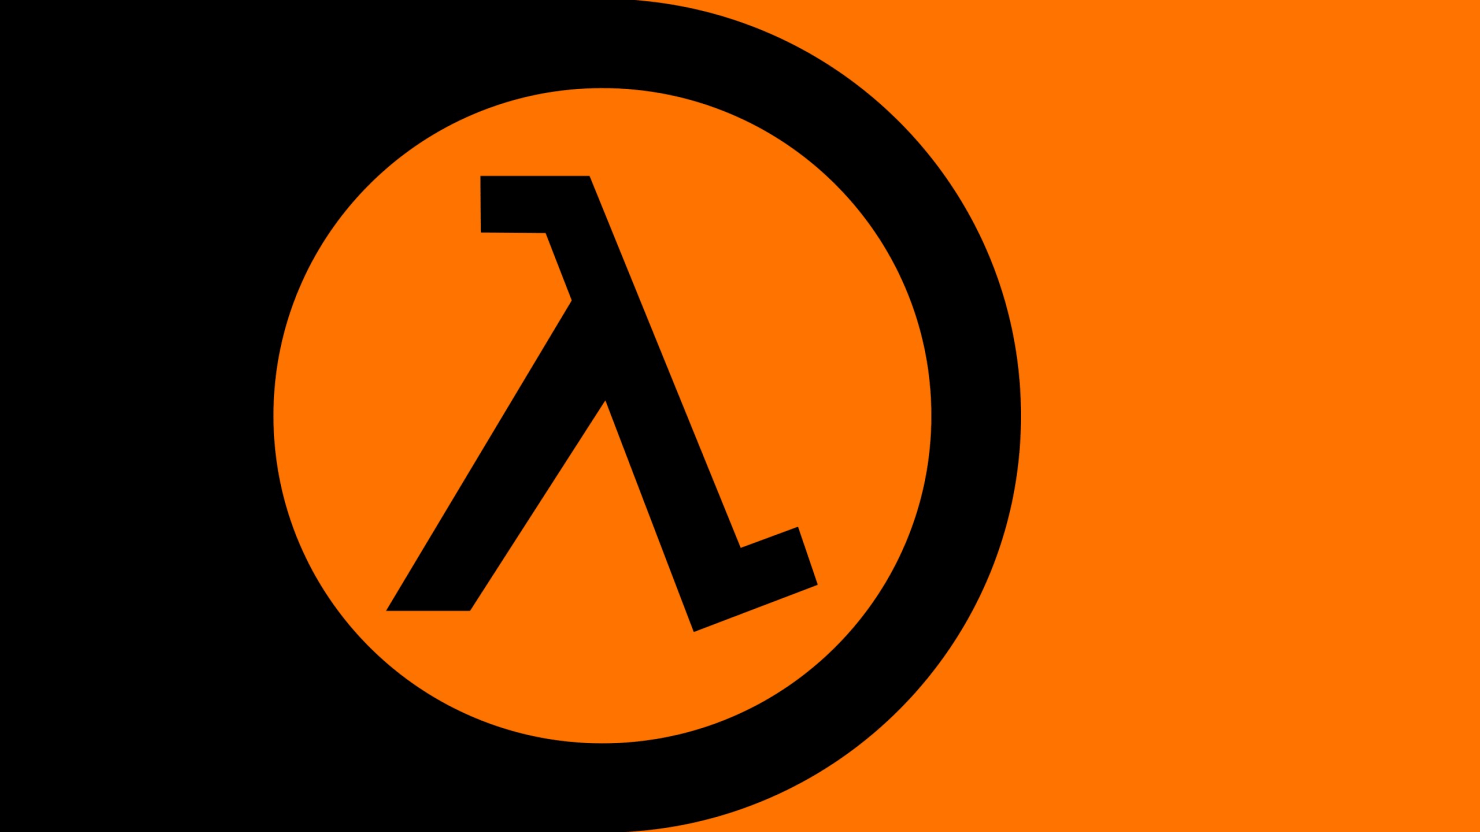 Valve makes all Half-Life games free to play for a limited time